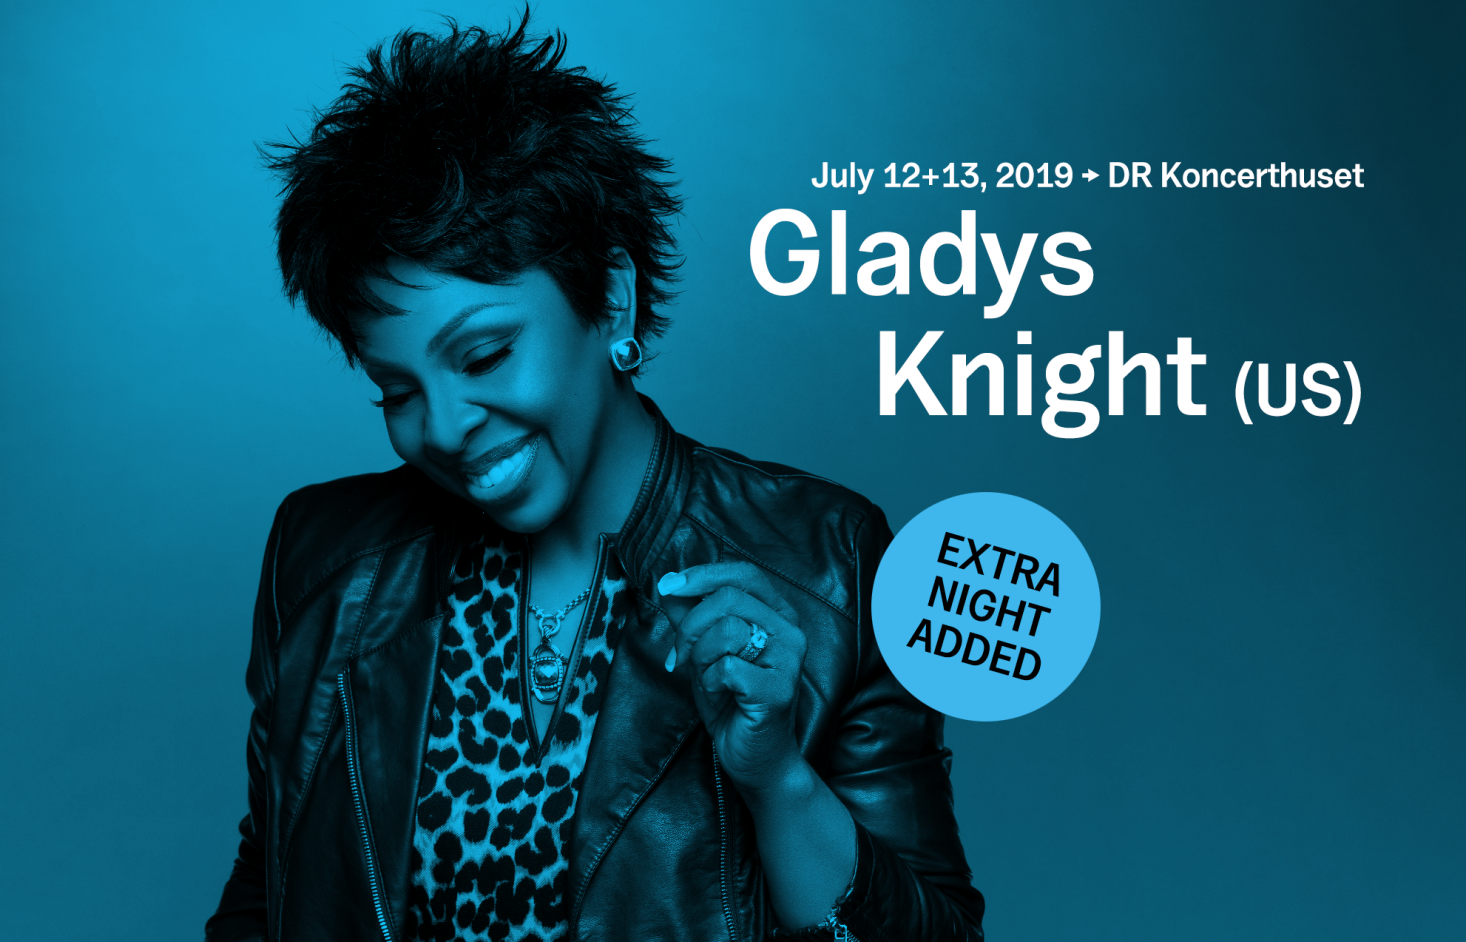 Gladys Knight is the first headliner at Copenhagen Jazz Festival 2019